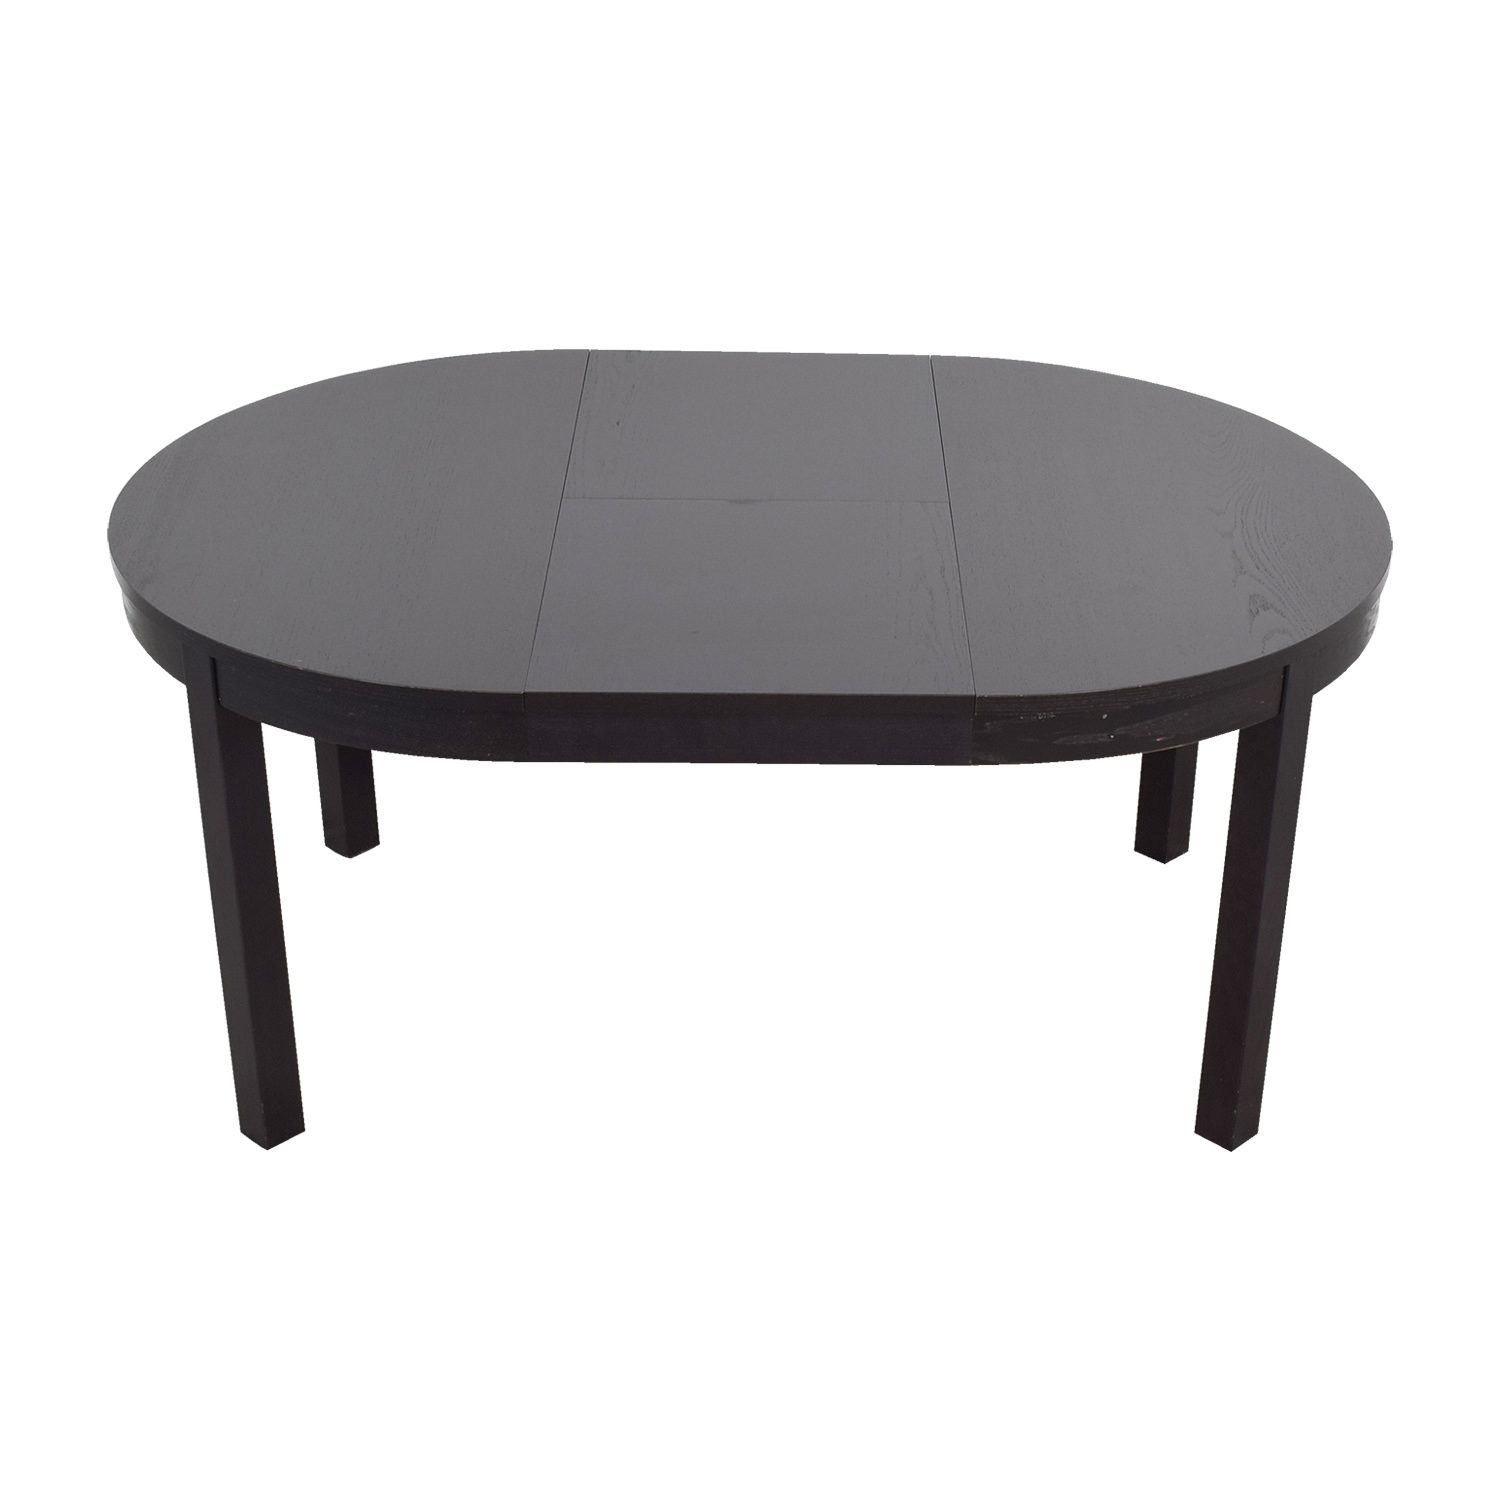 89 off ikea ikea bjursta extendable round to oval for Buy dining table